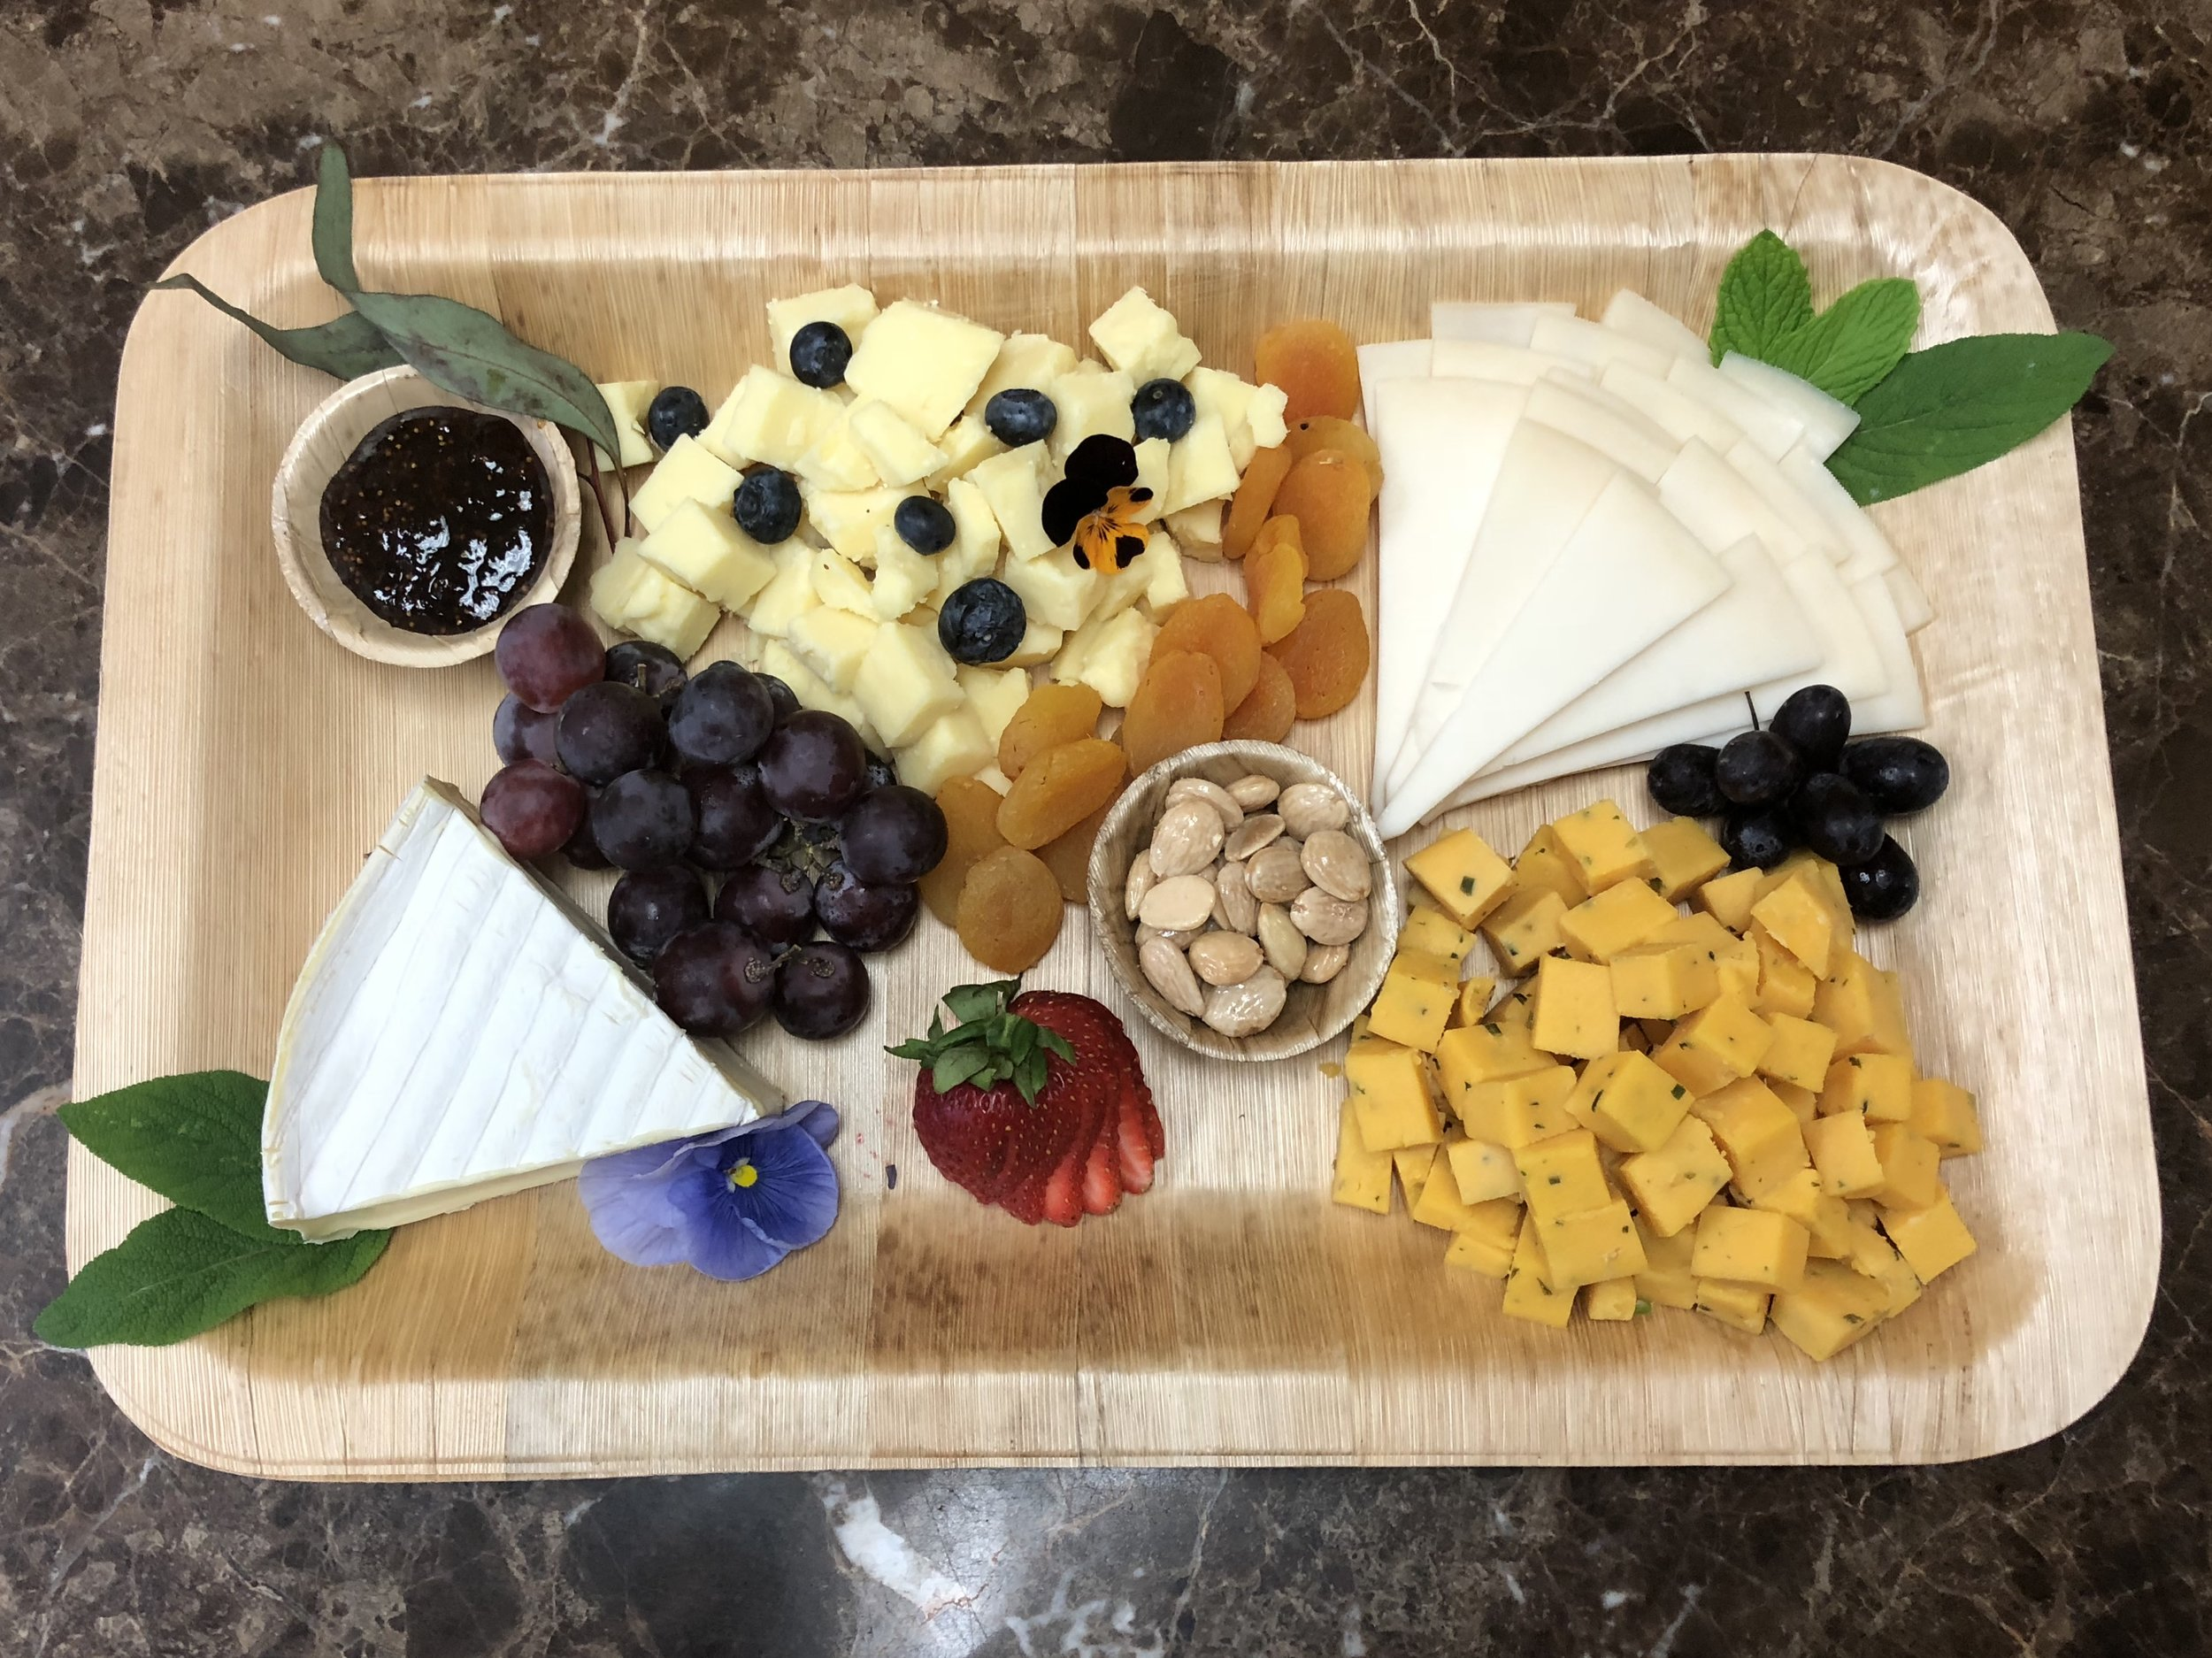 Large Cheese Plate - 4-5 Select cheese, nuts, fruits, fig preserve & mixed greens